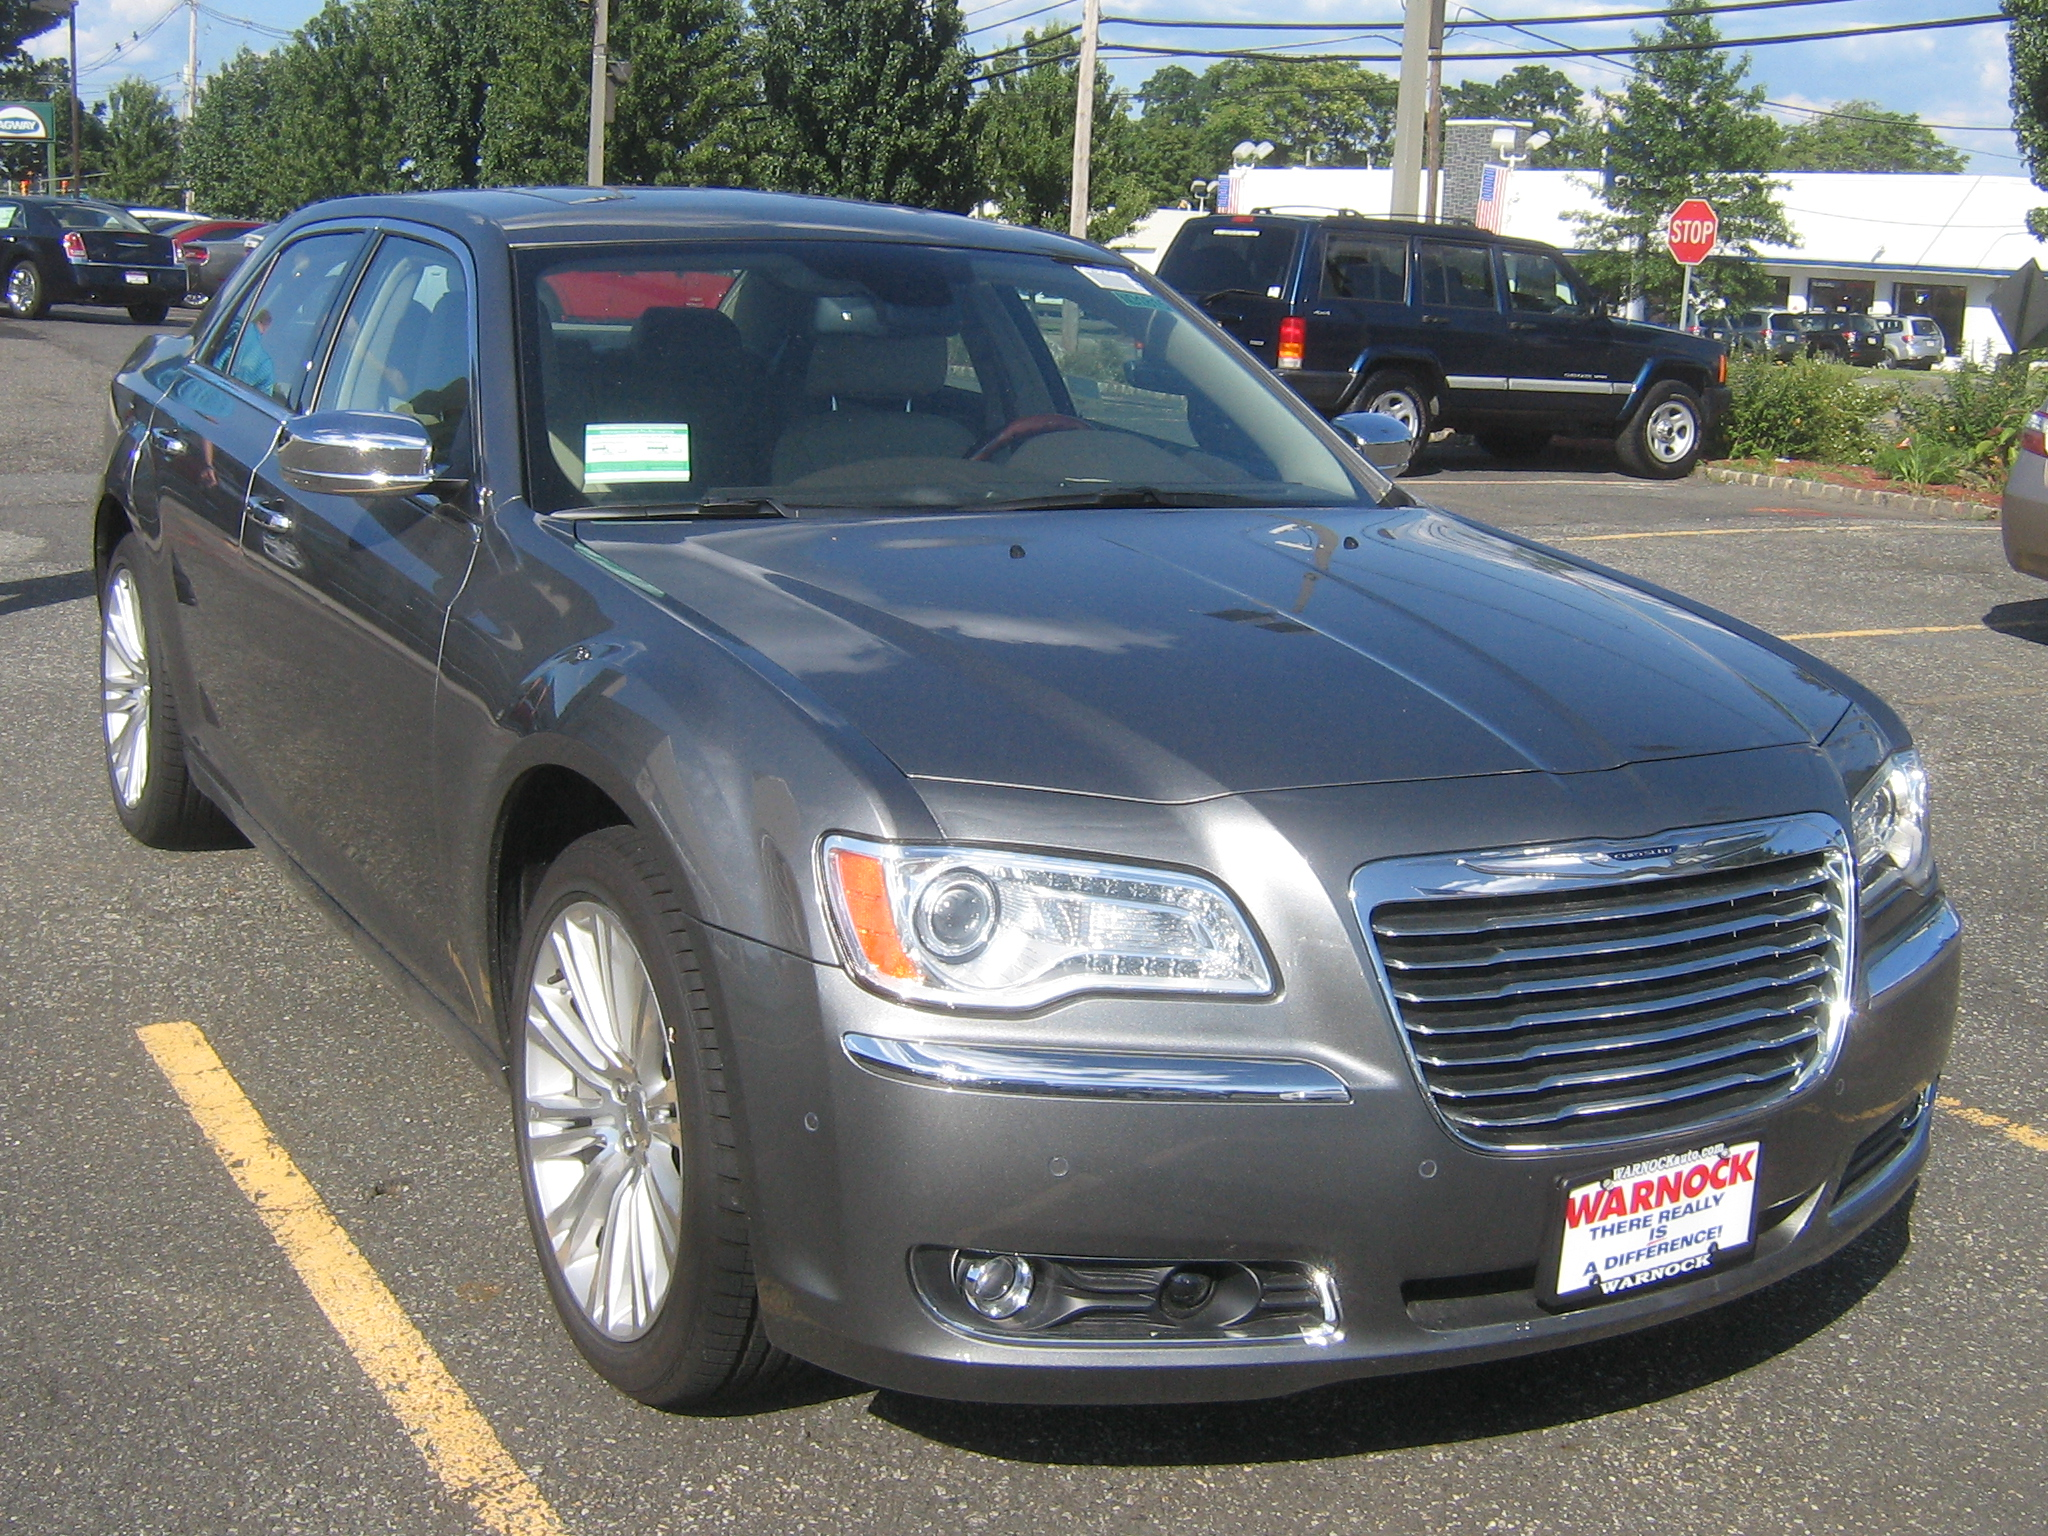 test driven chrysler 300 and 300c mind over motor. Black Bedroom Furniture Sets. Home Design Ideas